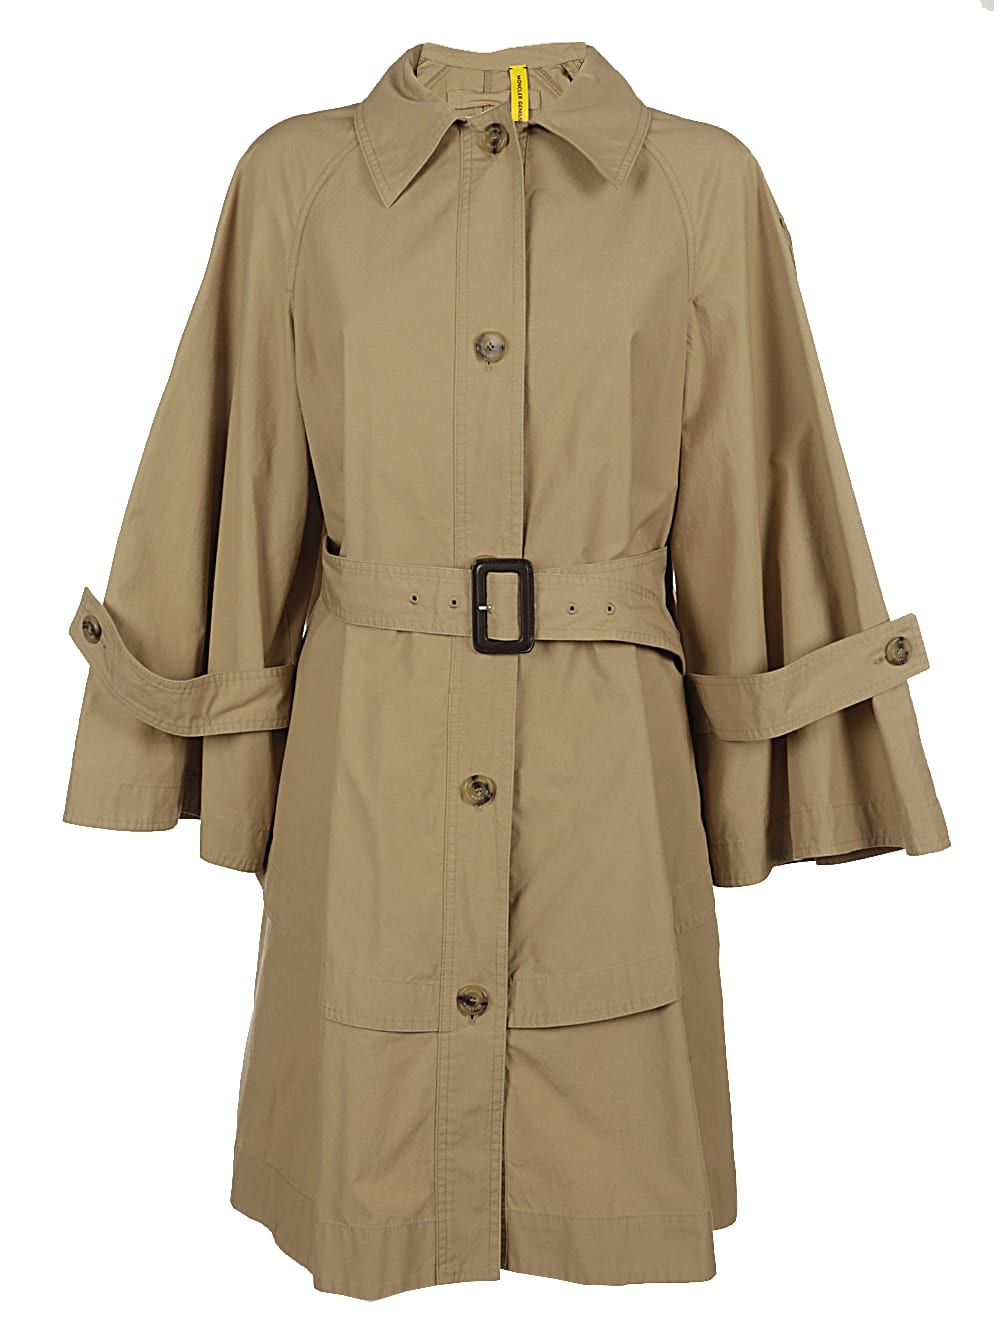 Moncler Genius DUNGENESS LONG COAT